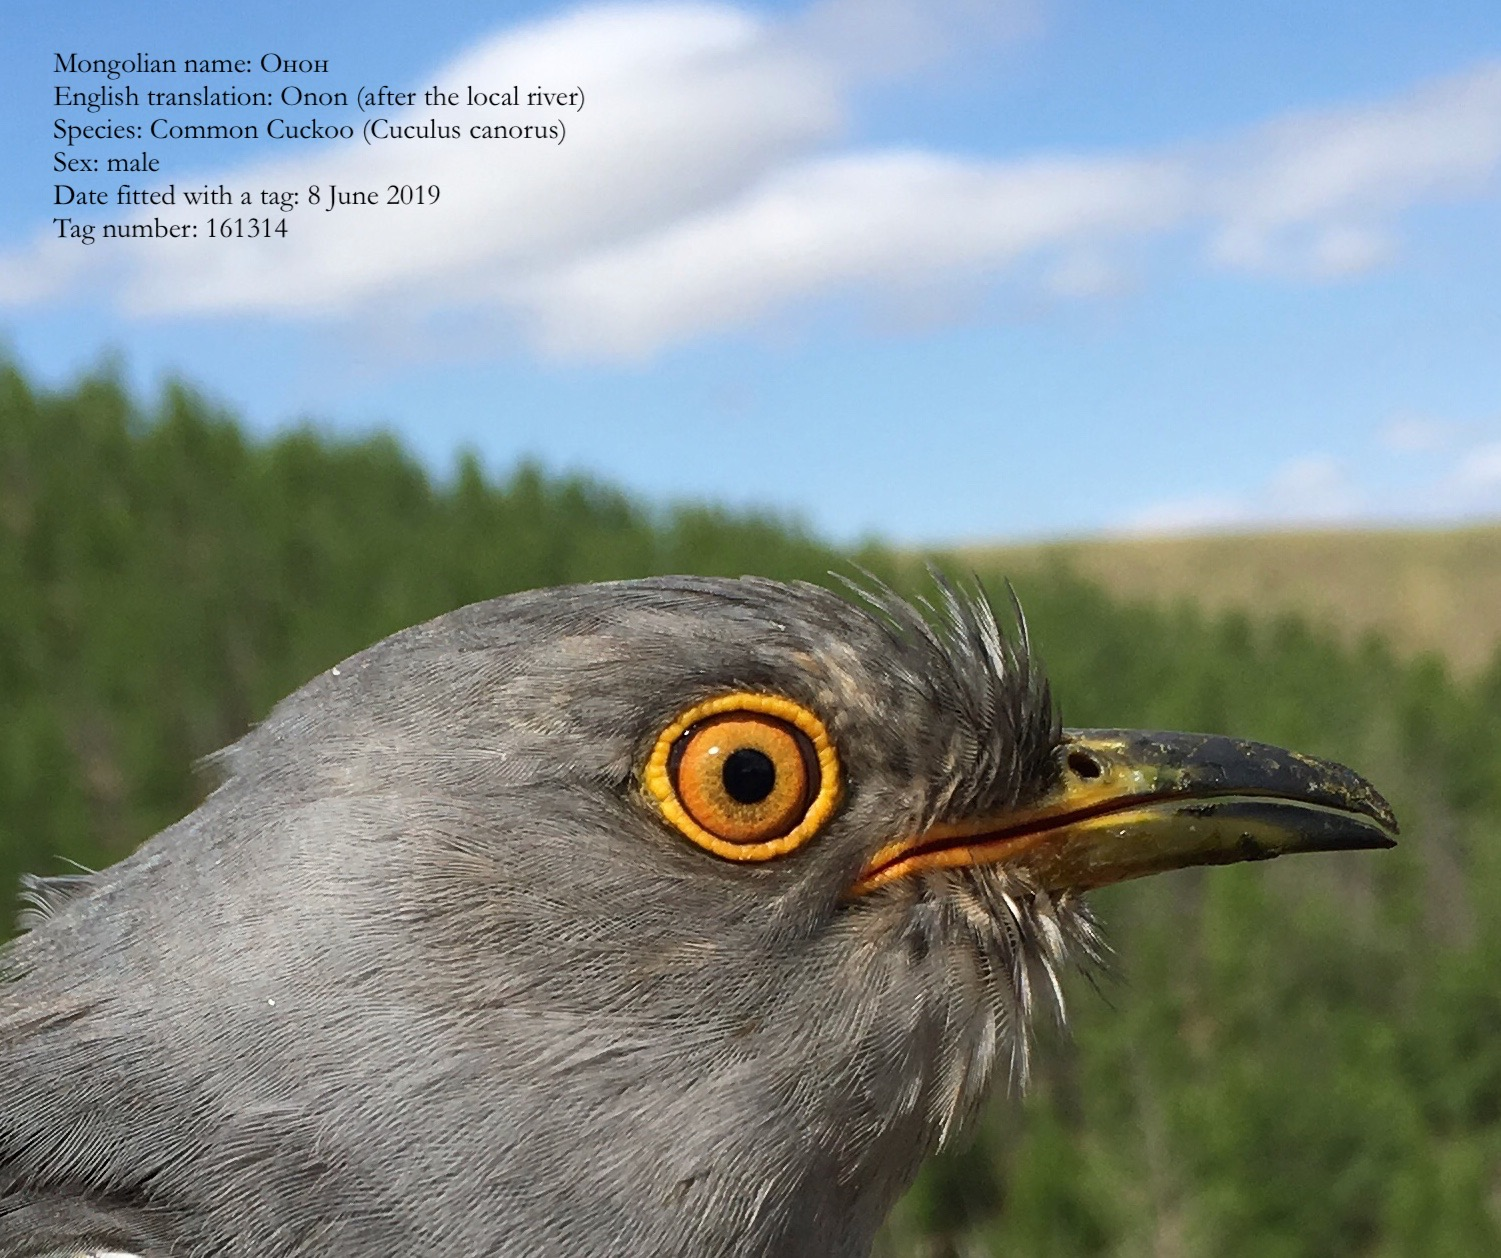 File image of The mongolian cuckoo known as Onon which flew from Kenya to India